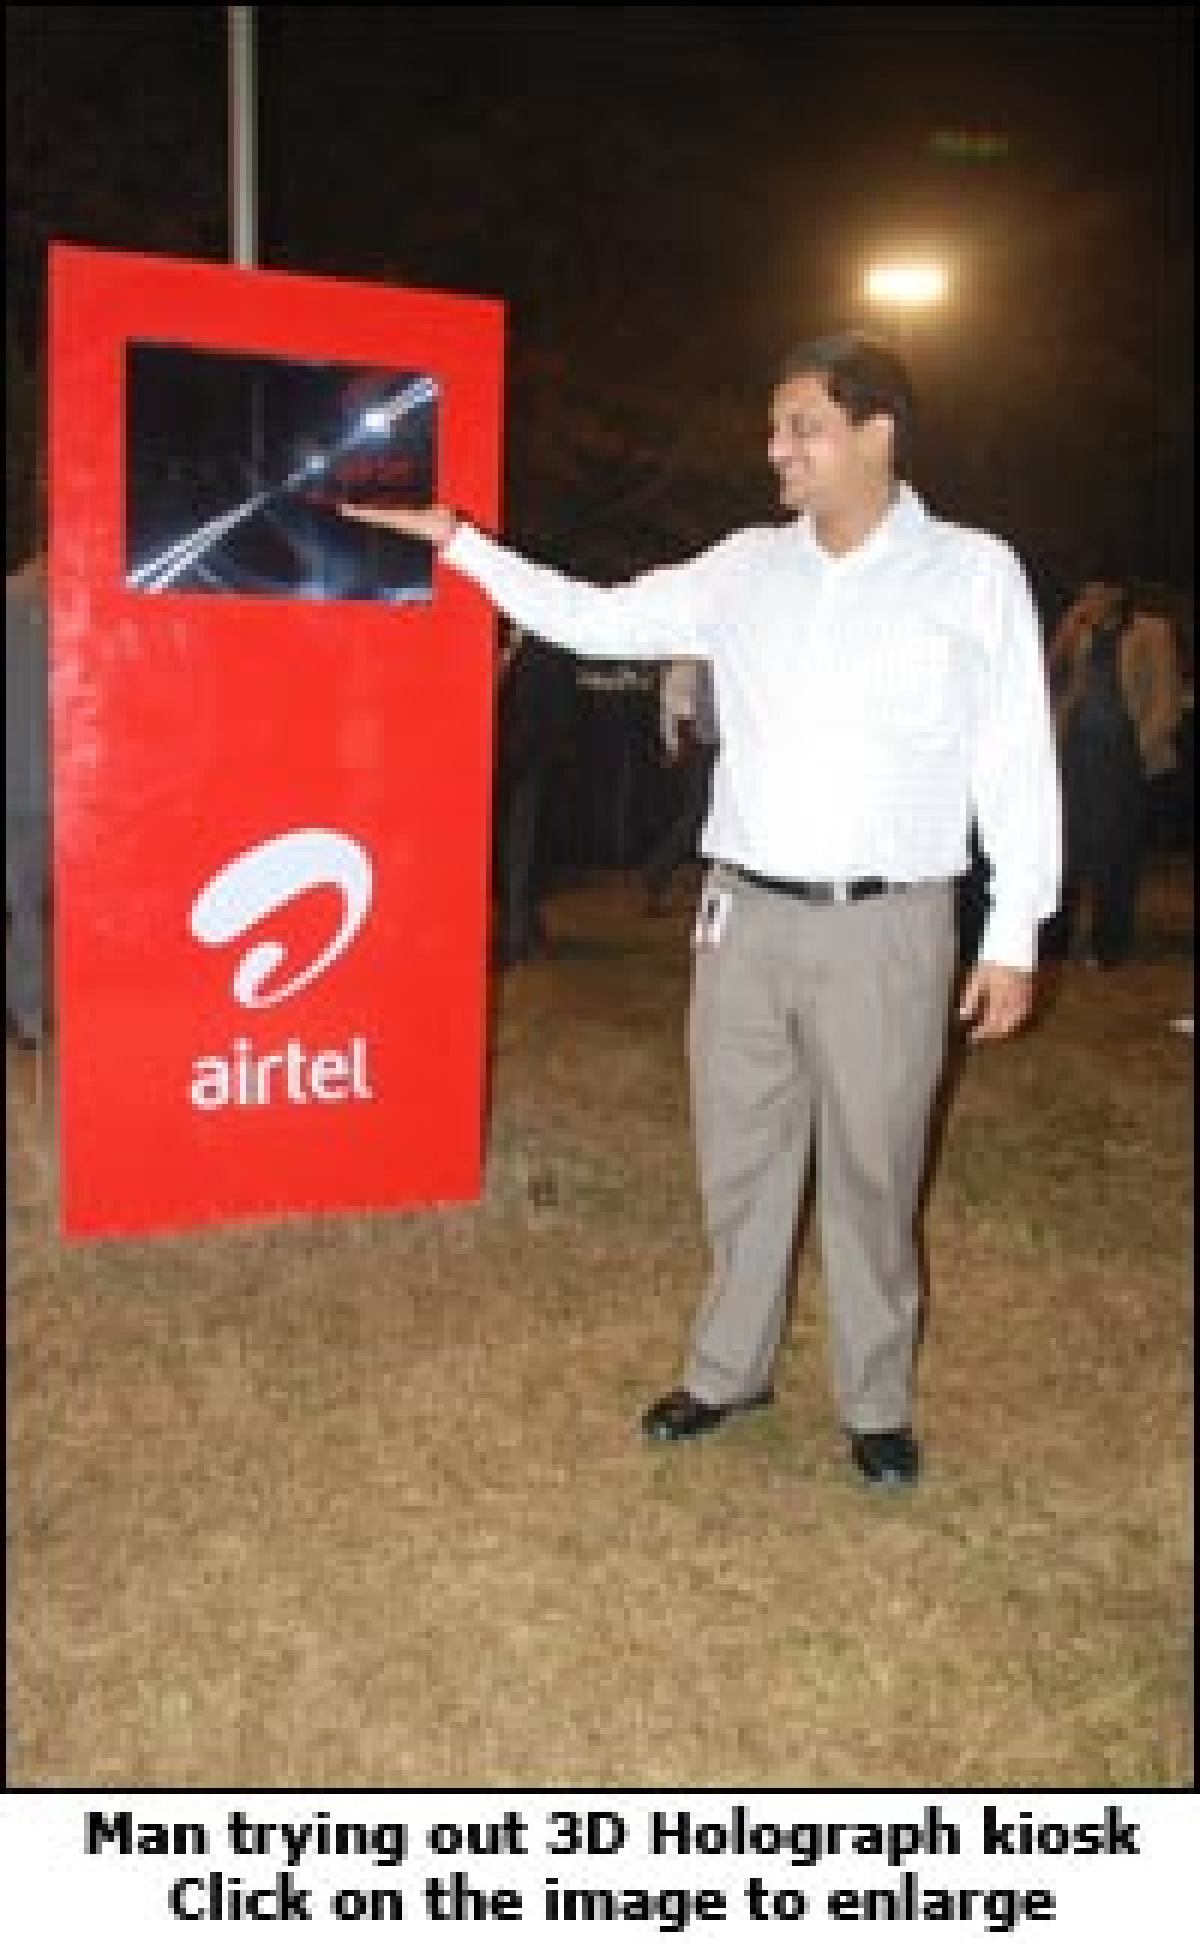 Brand Box creates buzz for Airtel's revamped logo